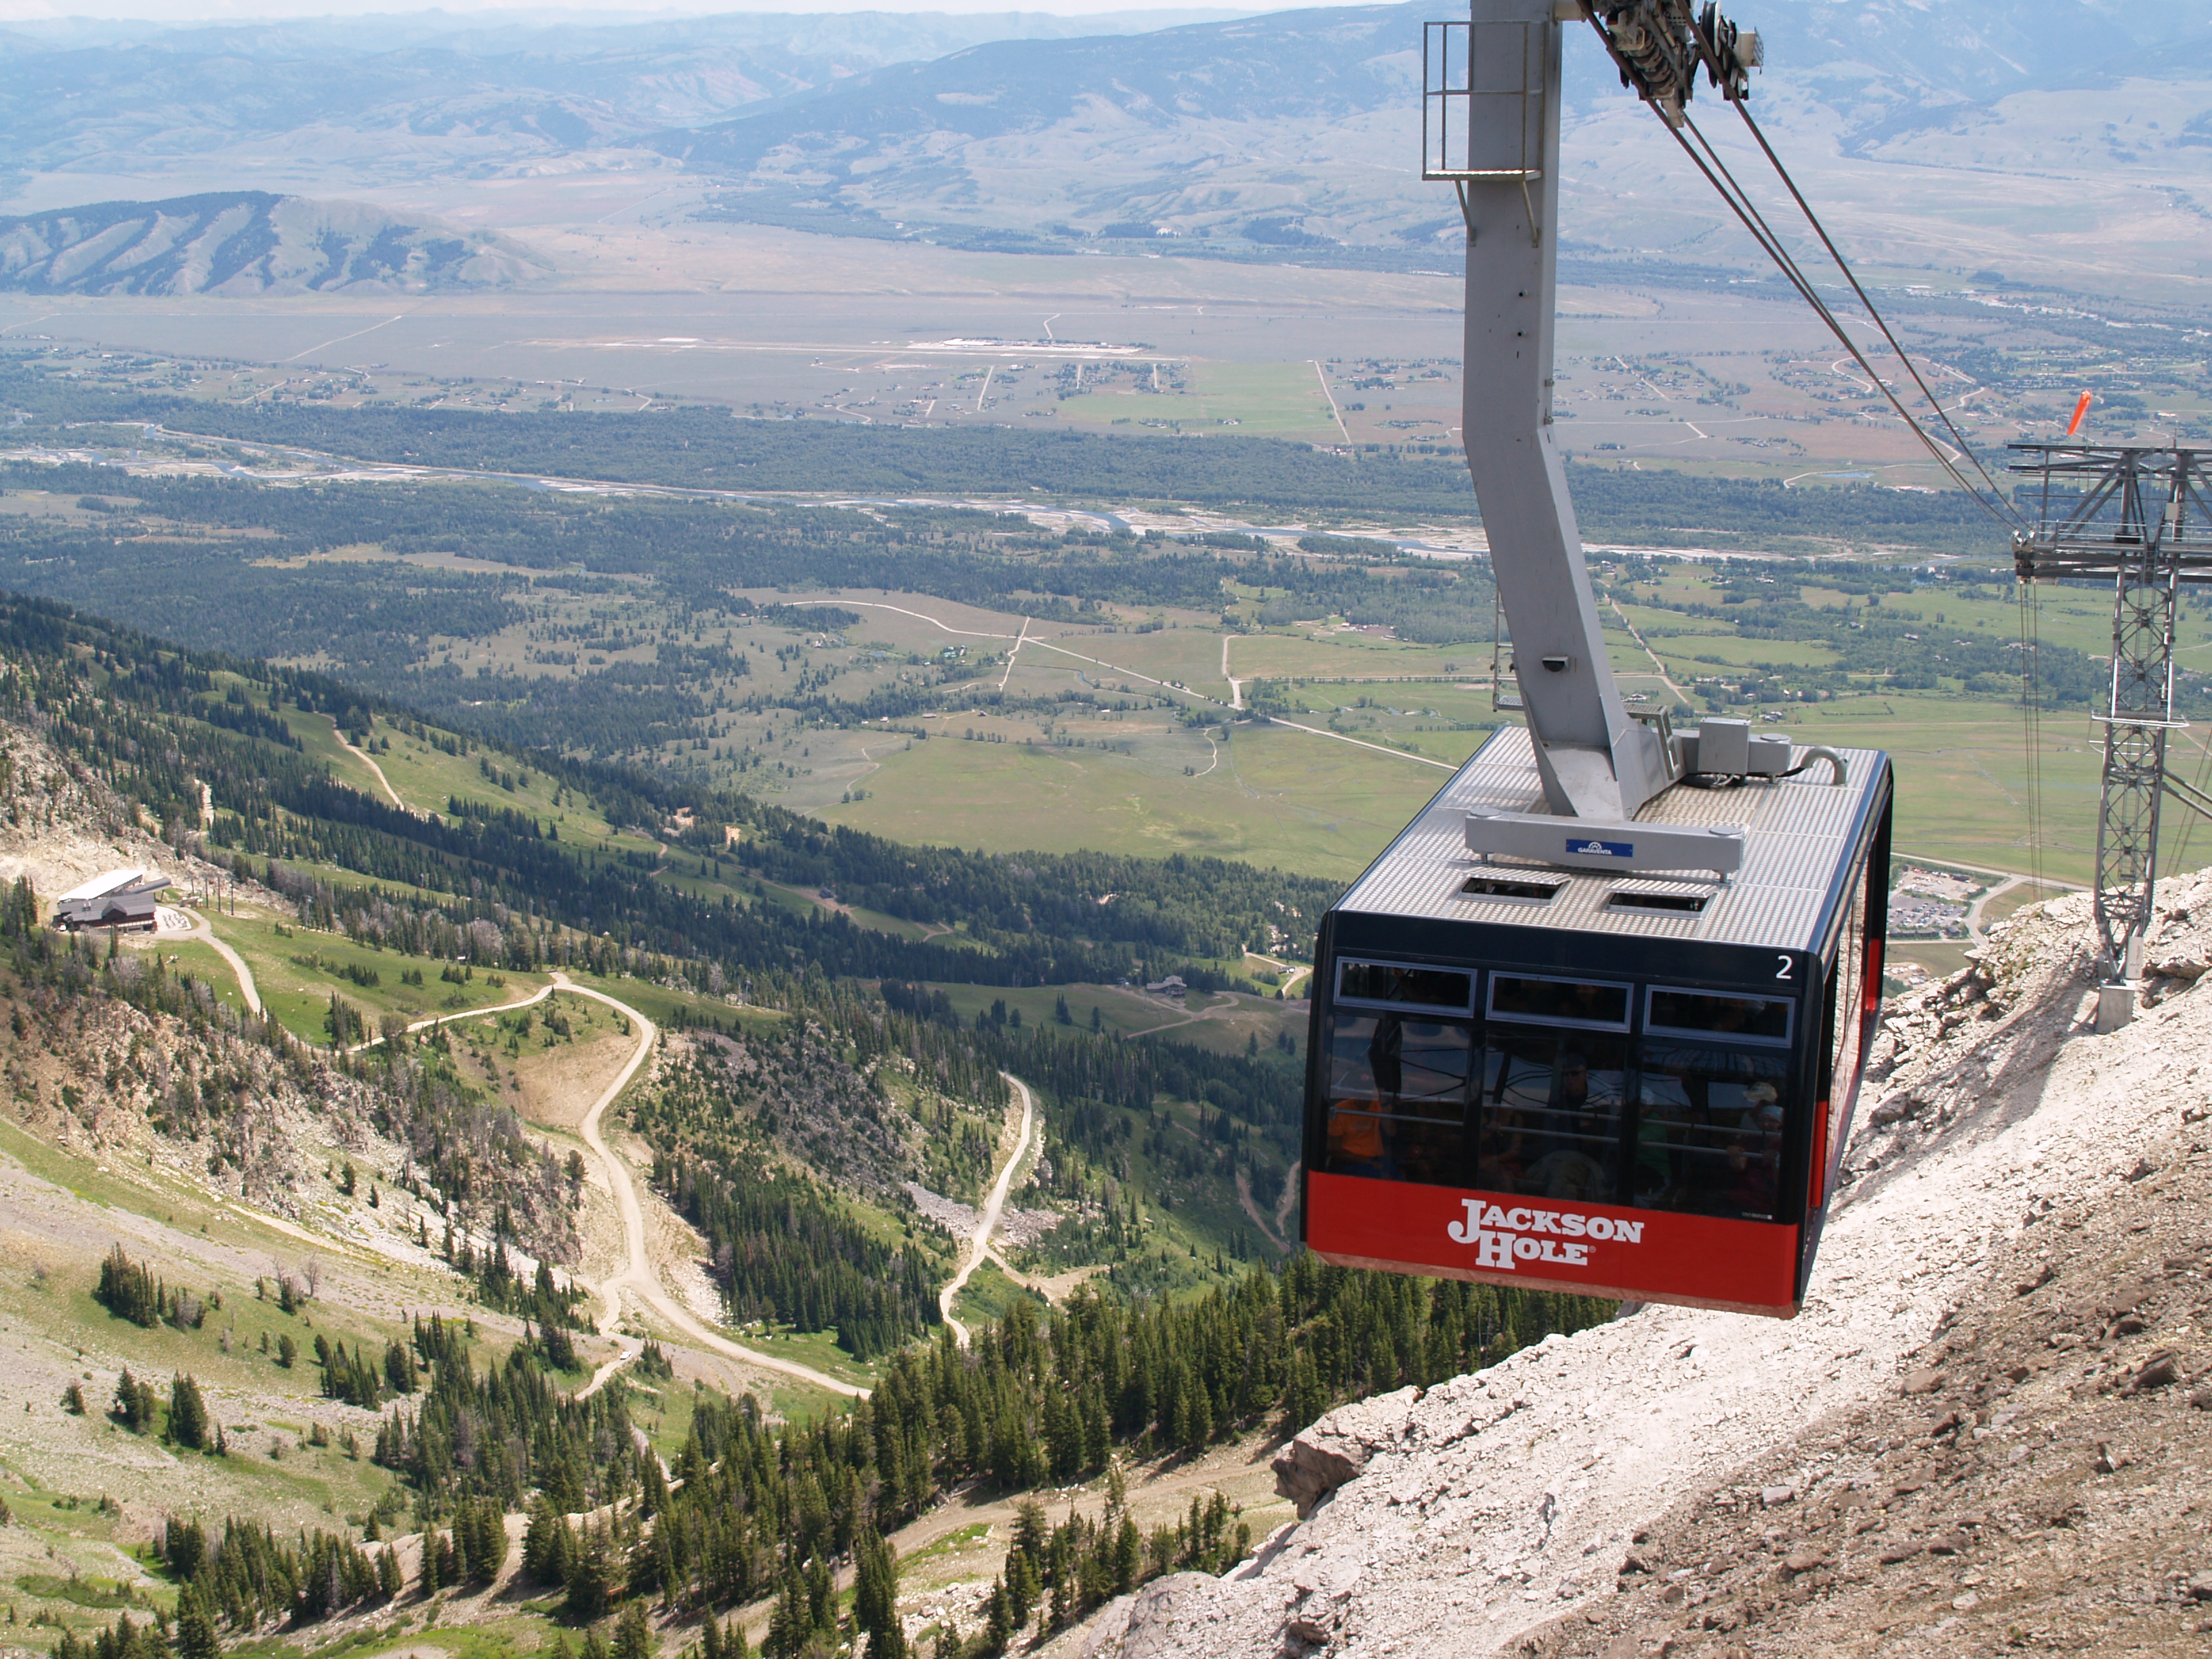 the tram arriving at the top of Rendezvous Mountain,Bridger Restaurant below on the far left